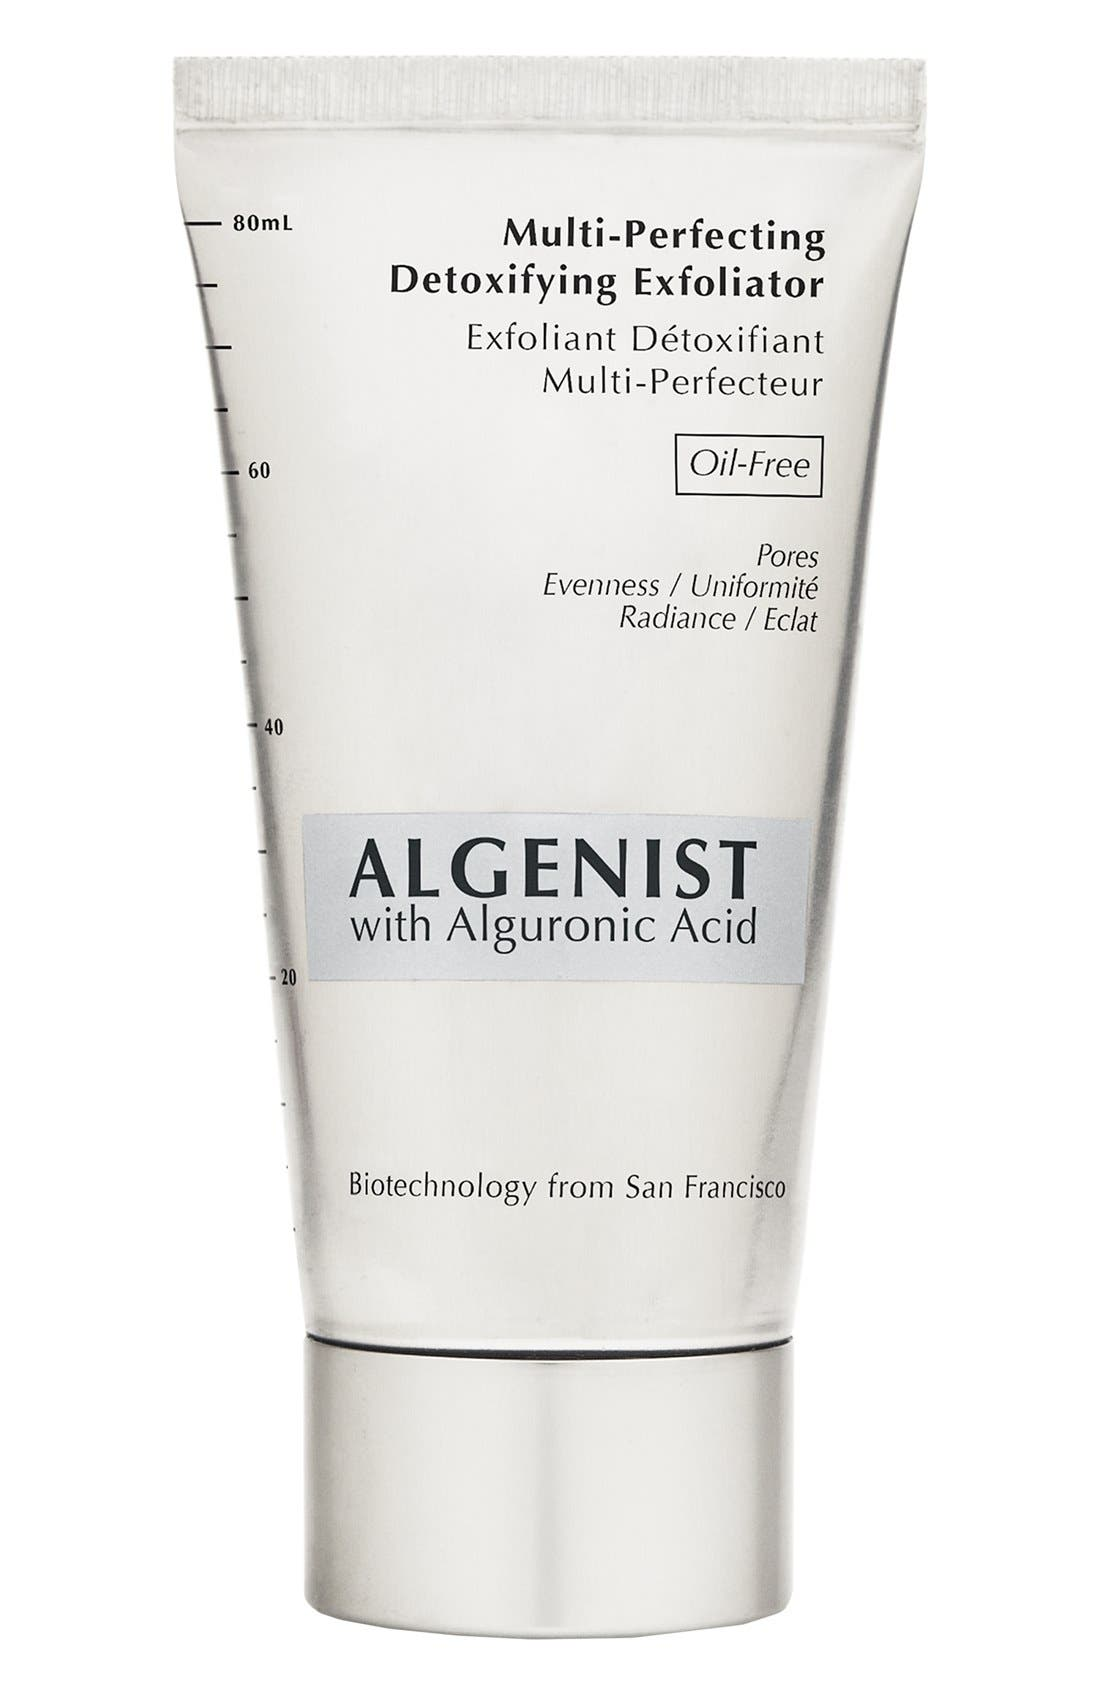 ALGENIST,                             Multi-Perfecting Detoxifying Exfoliator,                             Main thumbnail 1, color,                             000